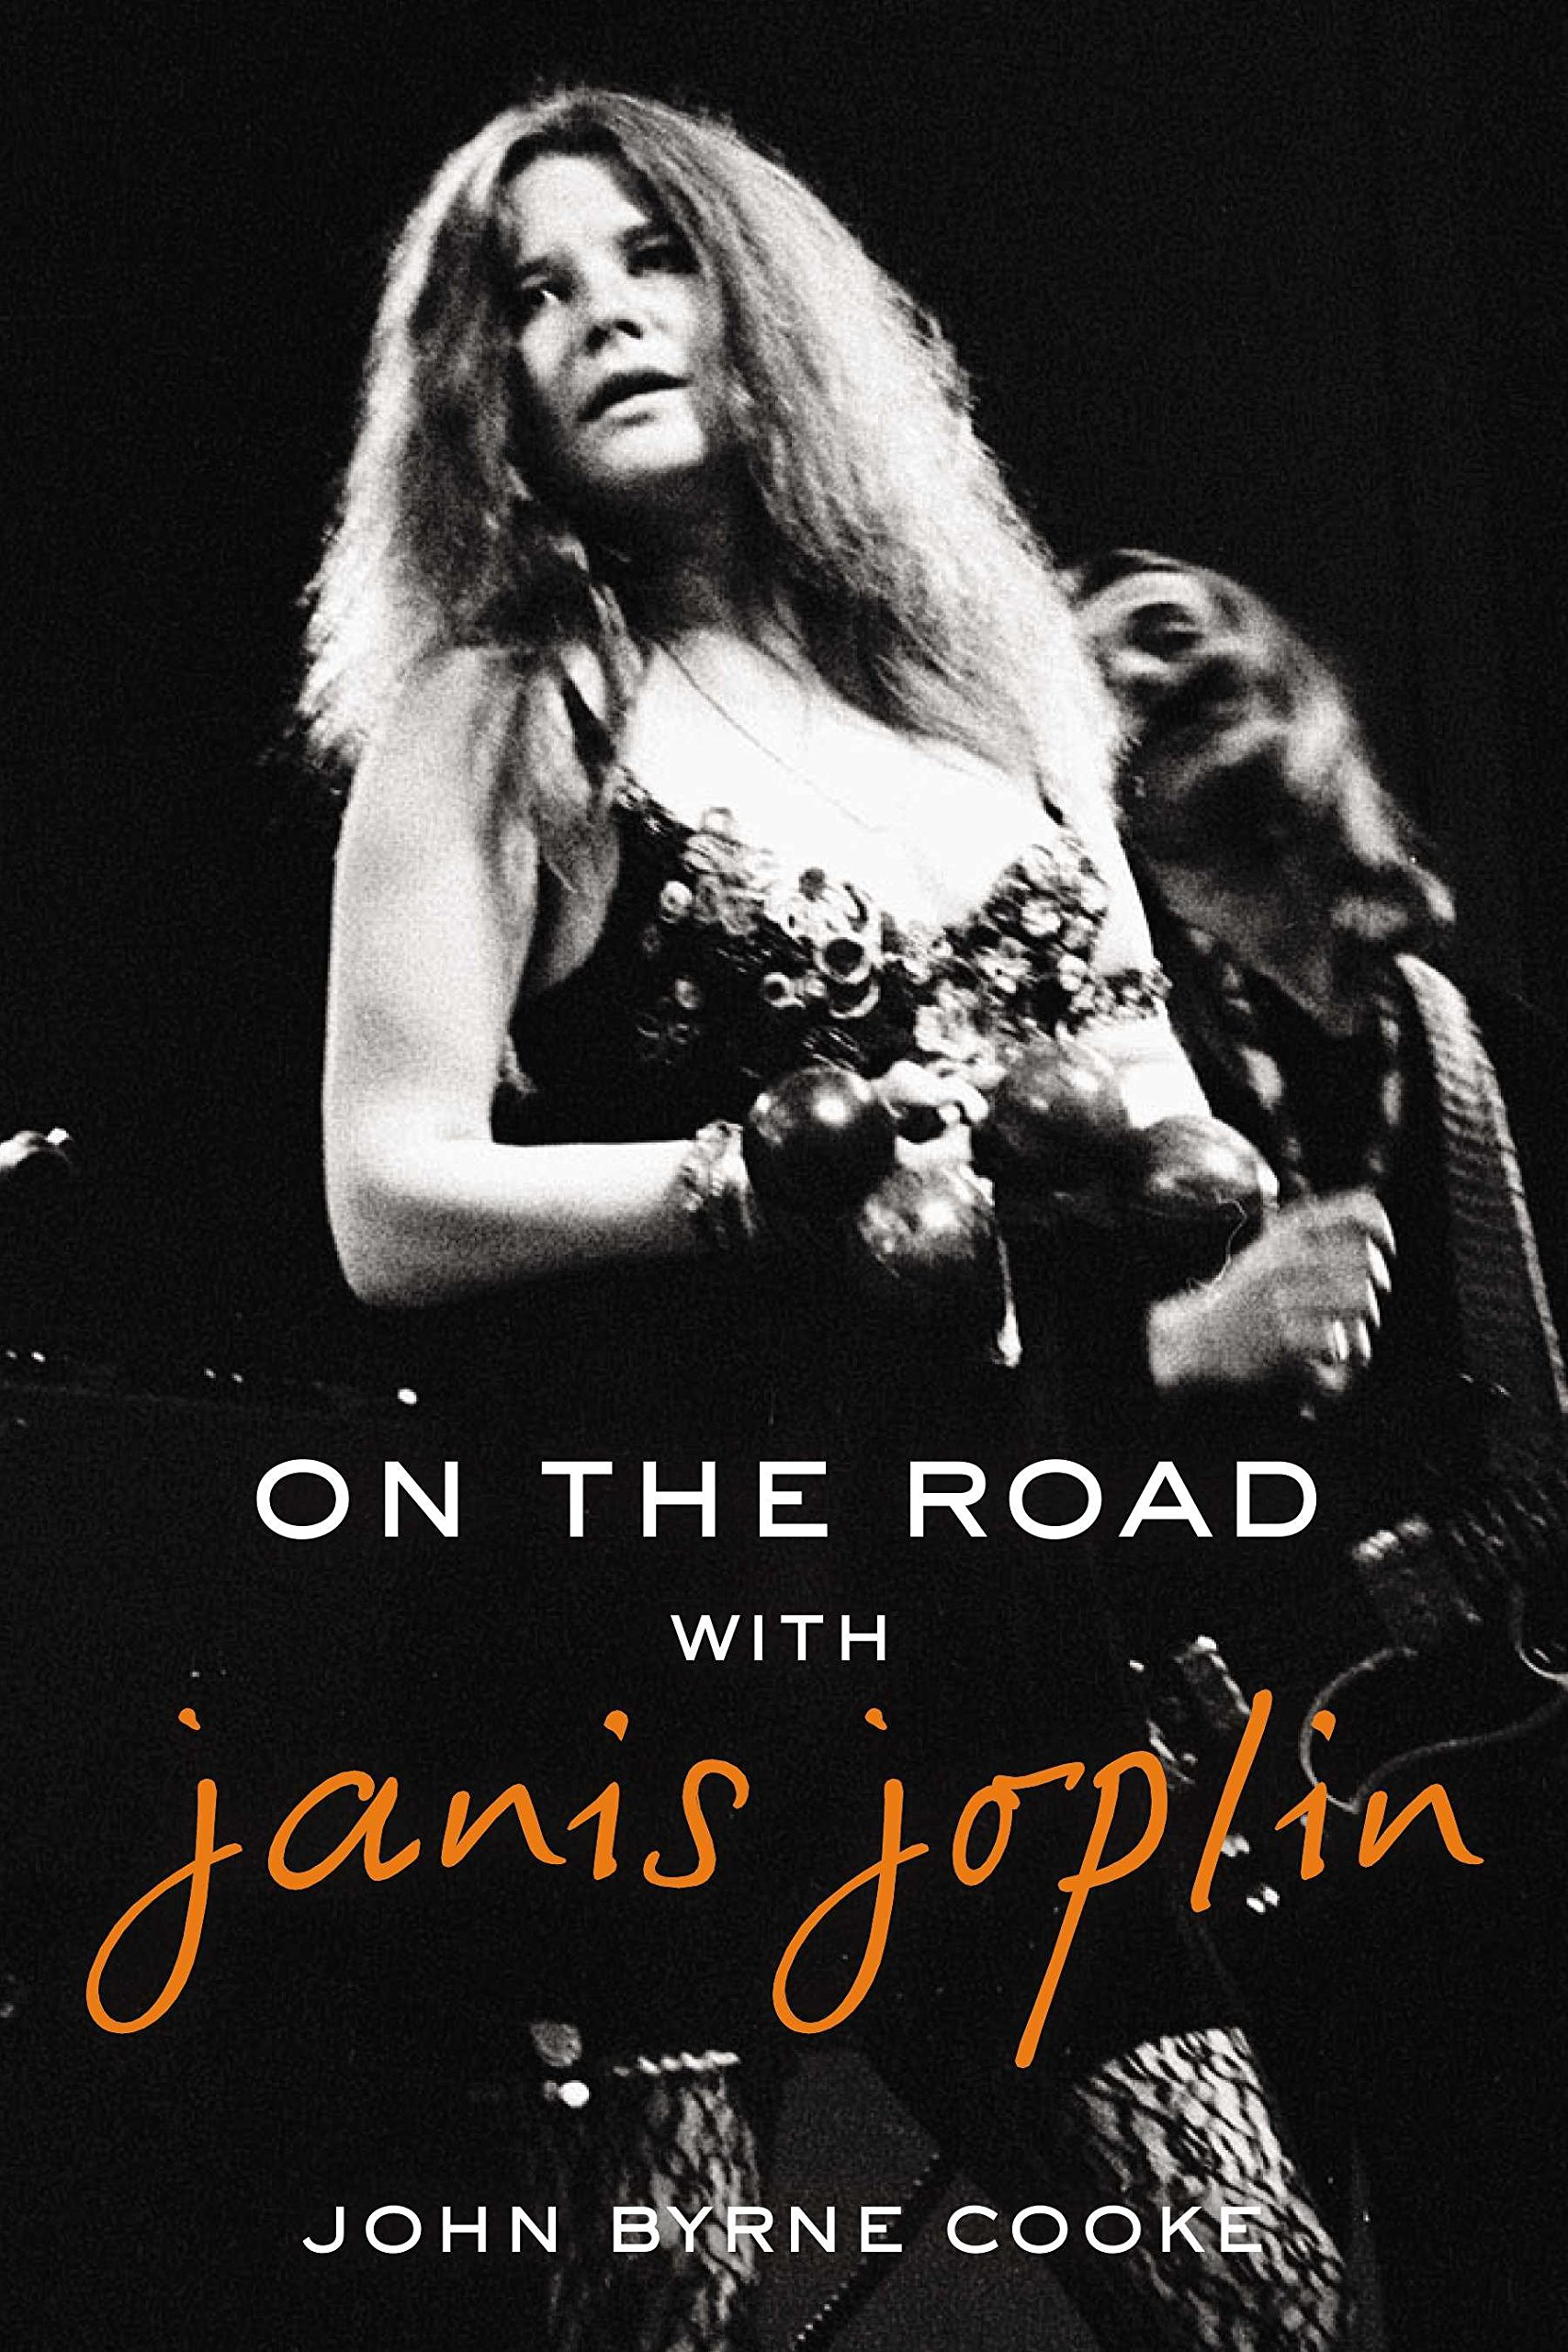 On the Road with Janis Joplin: John Byrne Cooke: 9780425274118: Amazon.com:  Books